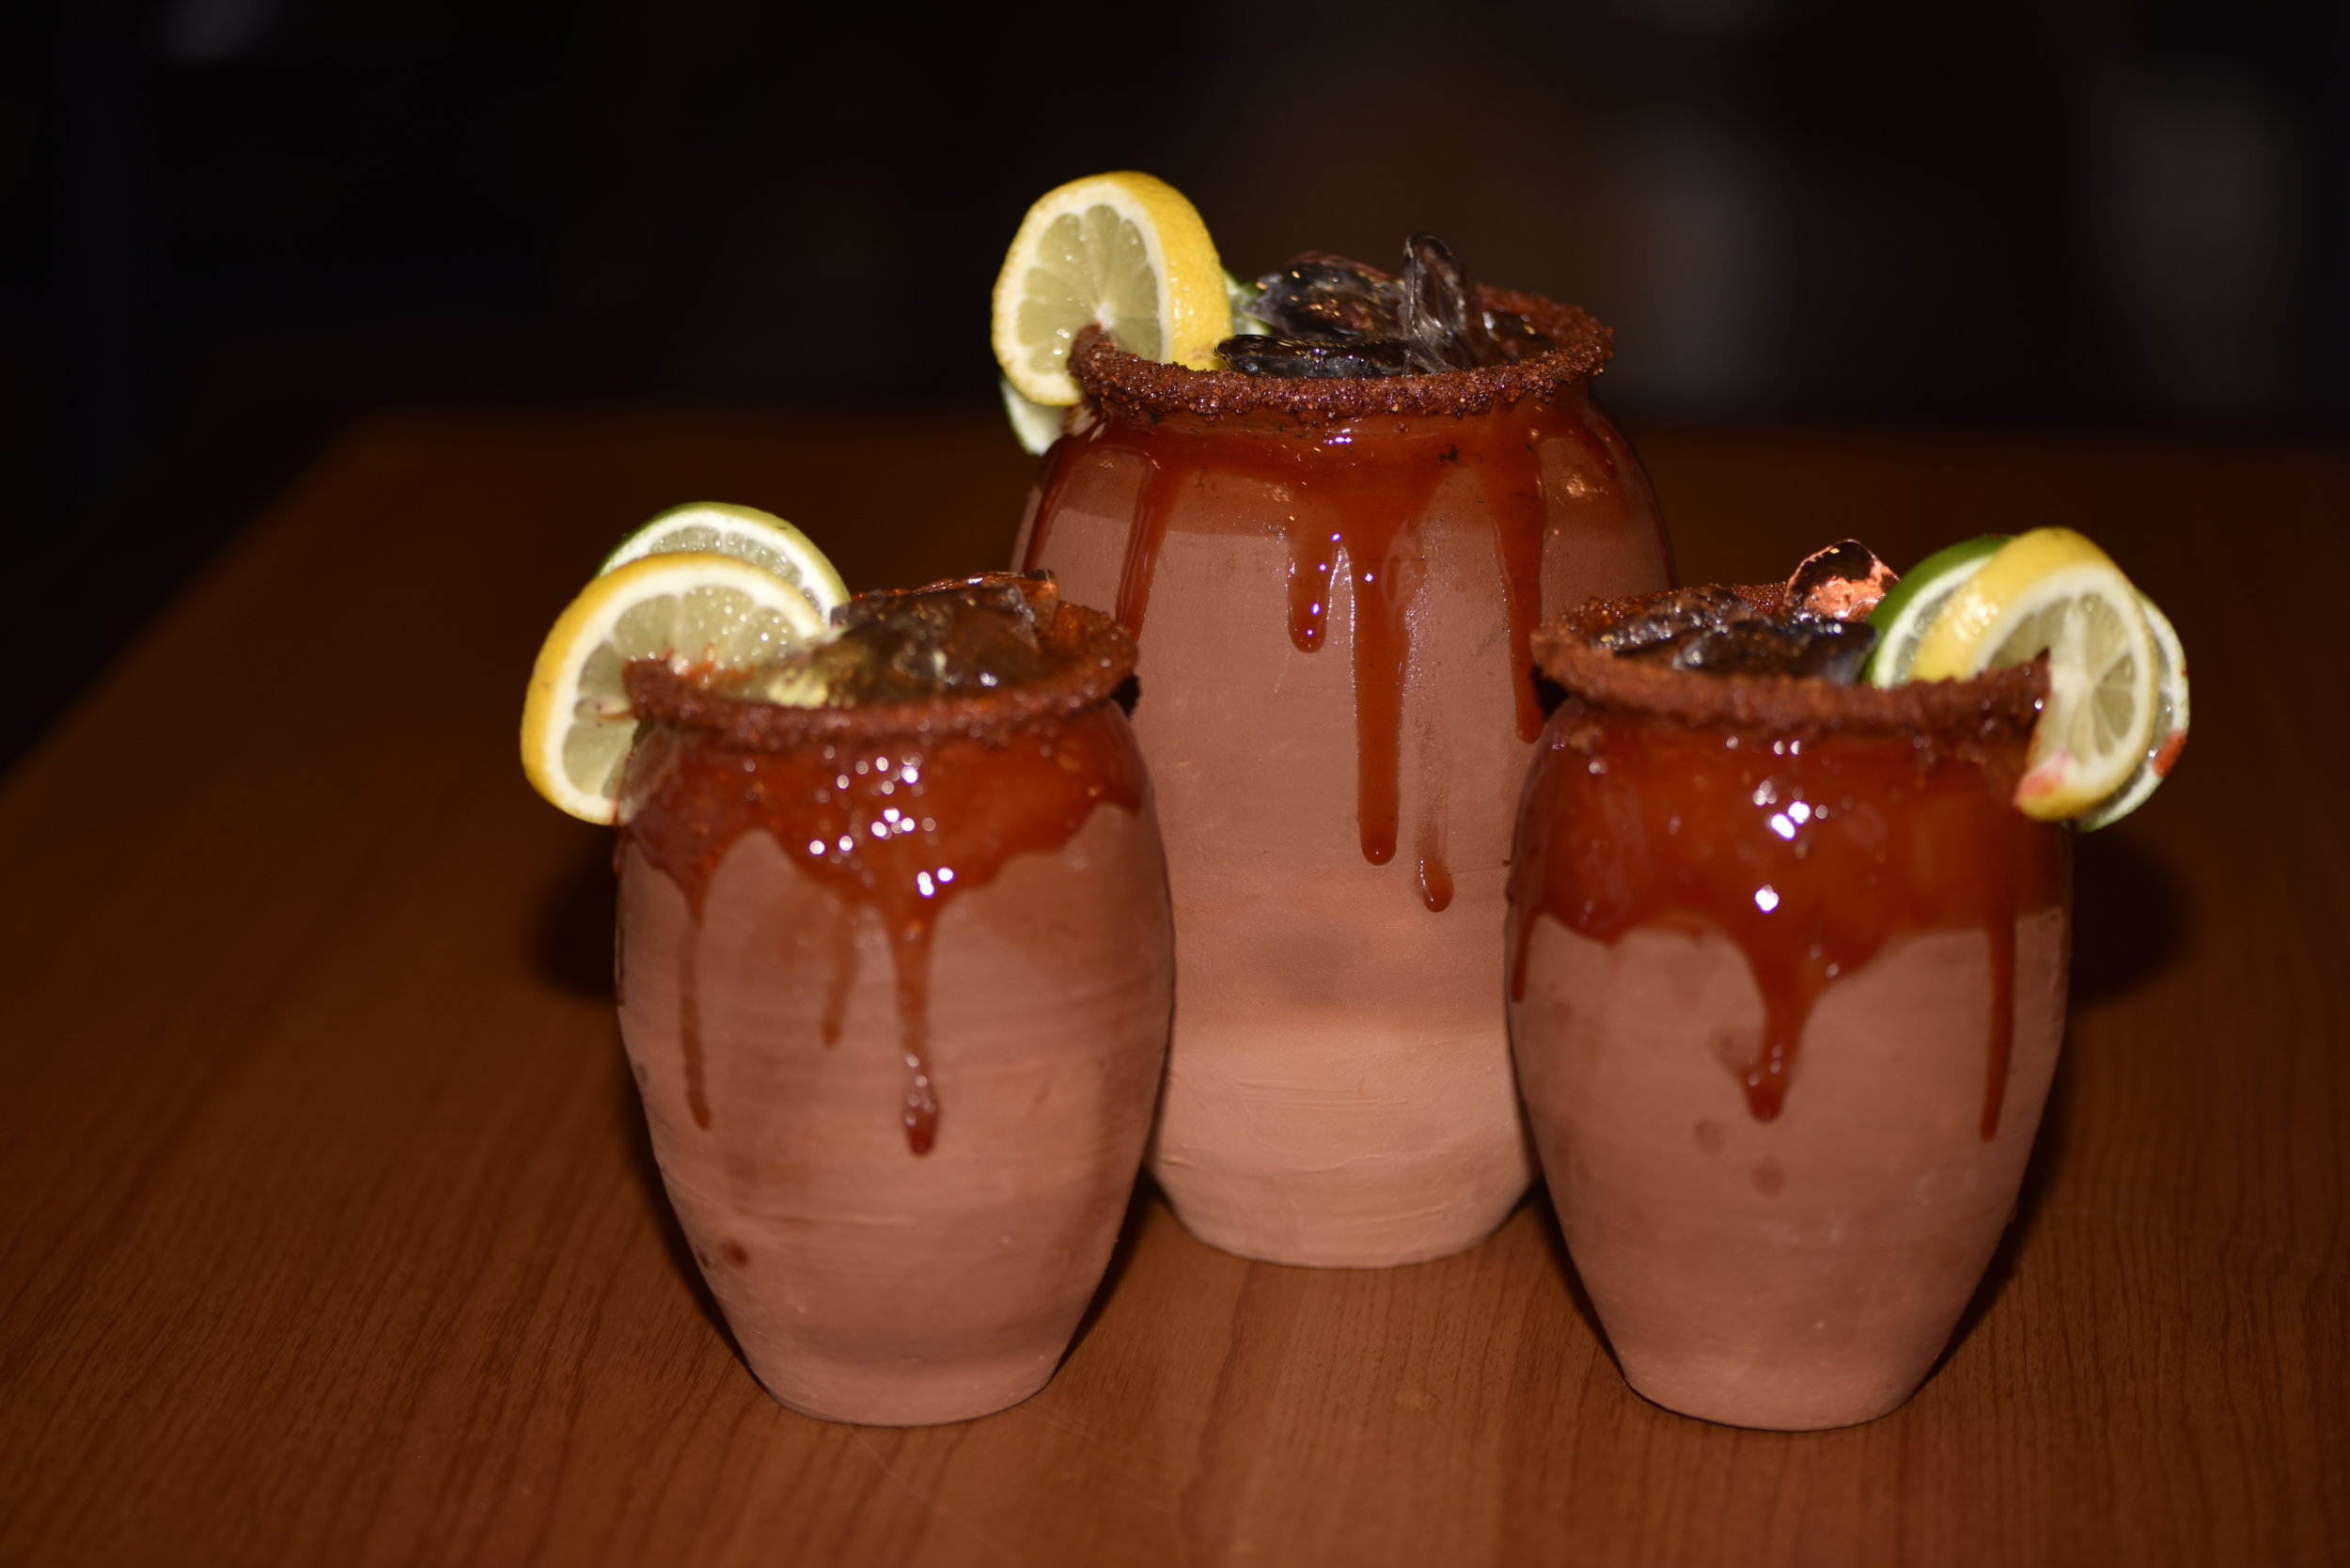 What's a Cantarito? - The Cantarito is a traditional  Mexican cocktail named after the handmade clay jug that it is typically served in. The classic favorite, is a refreshing mixture of silver or gold tequila, orange, grapefruit, and lime juice served on the rocks with a chili lime rim.